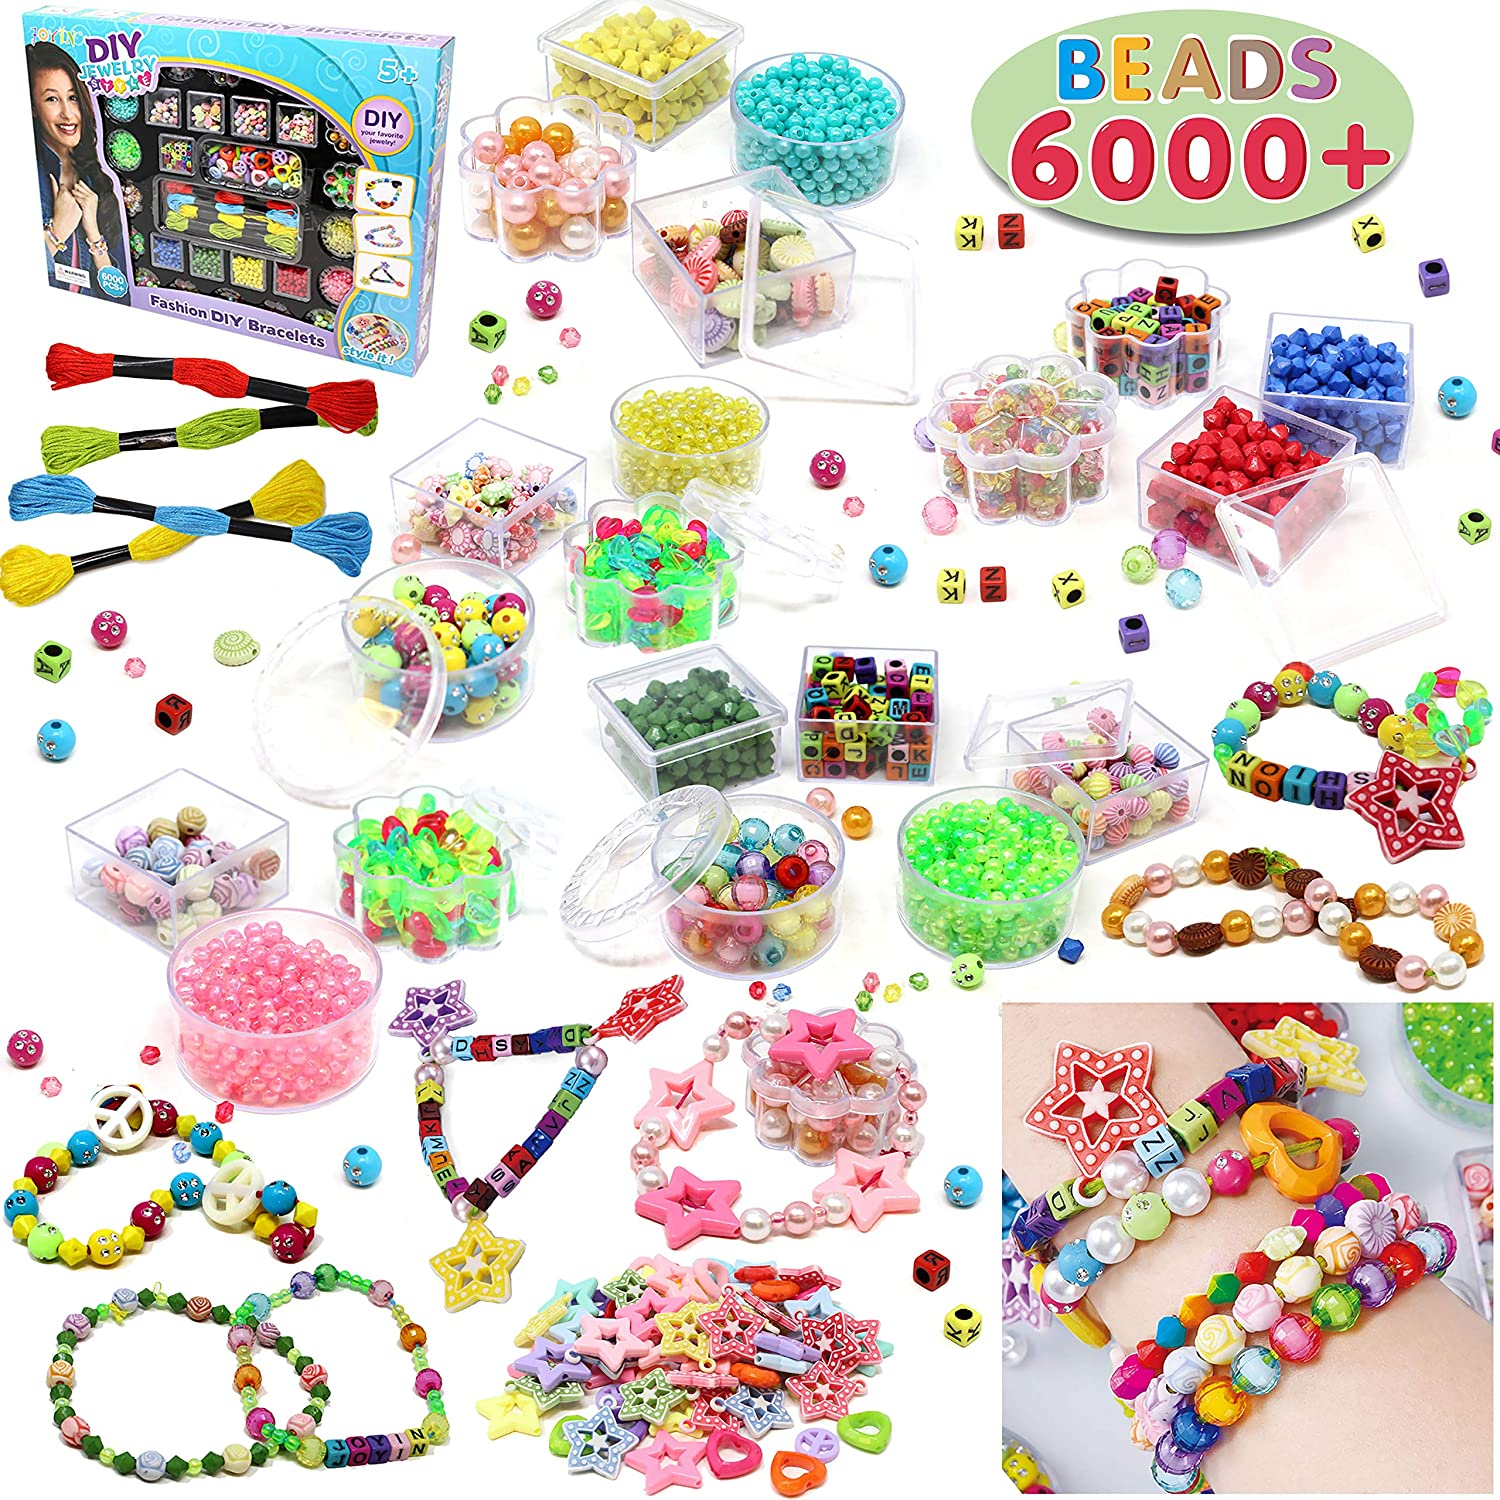 4064be877ba4a Beads Set 6000 Pieces DIY Beads Kit; 28 Different Types & 4 Color Strings  for Jewelry Necklace Making, Friendship Bracelet Making and Valentines Day  ...